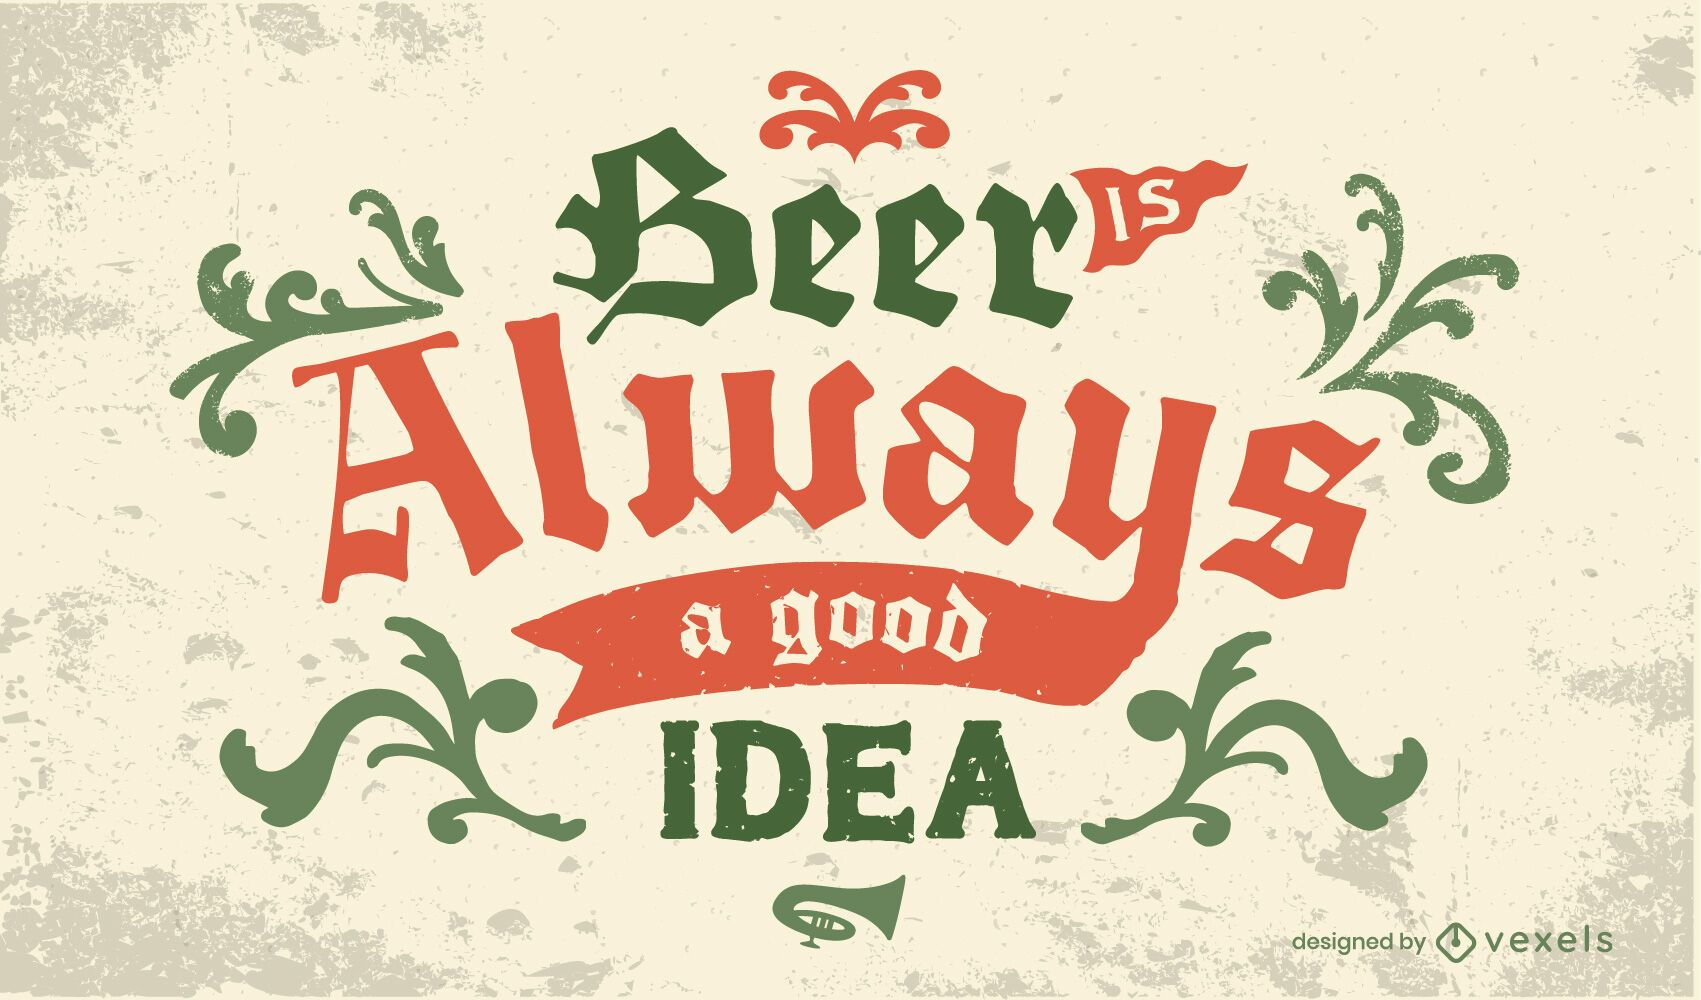 Beer is always a good idea lettering